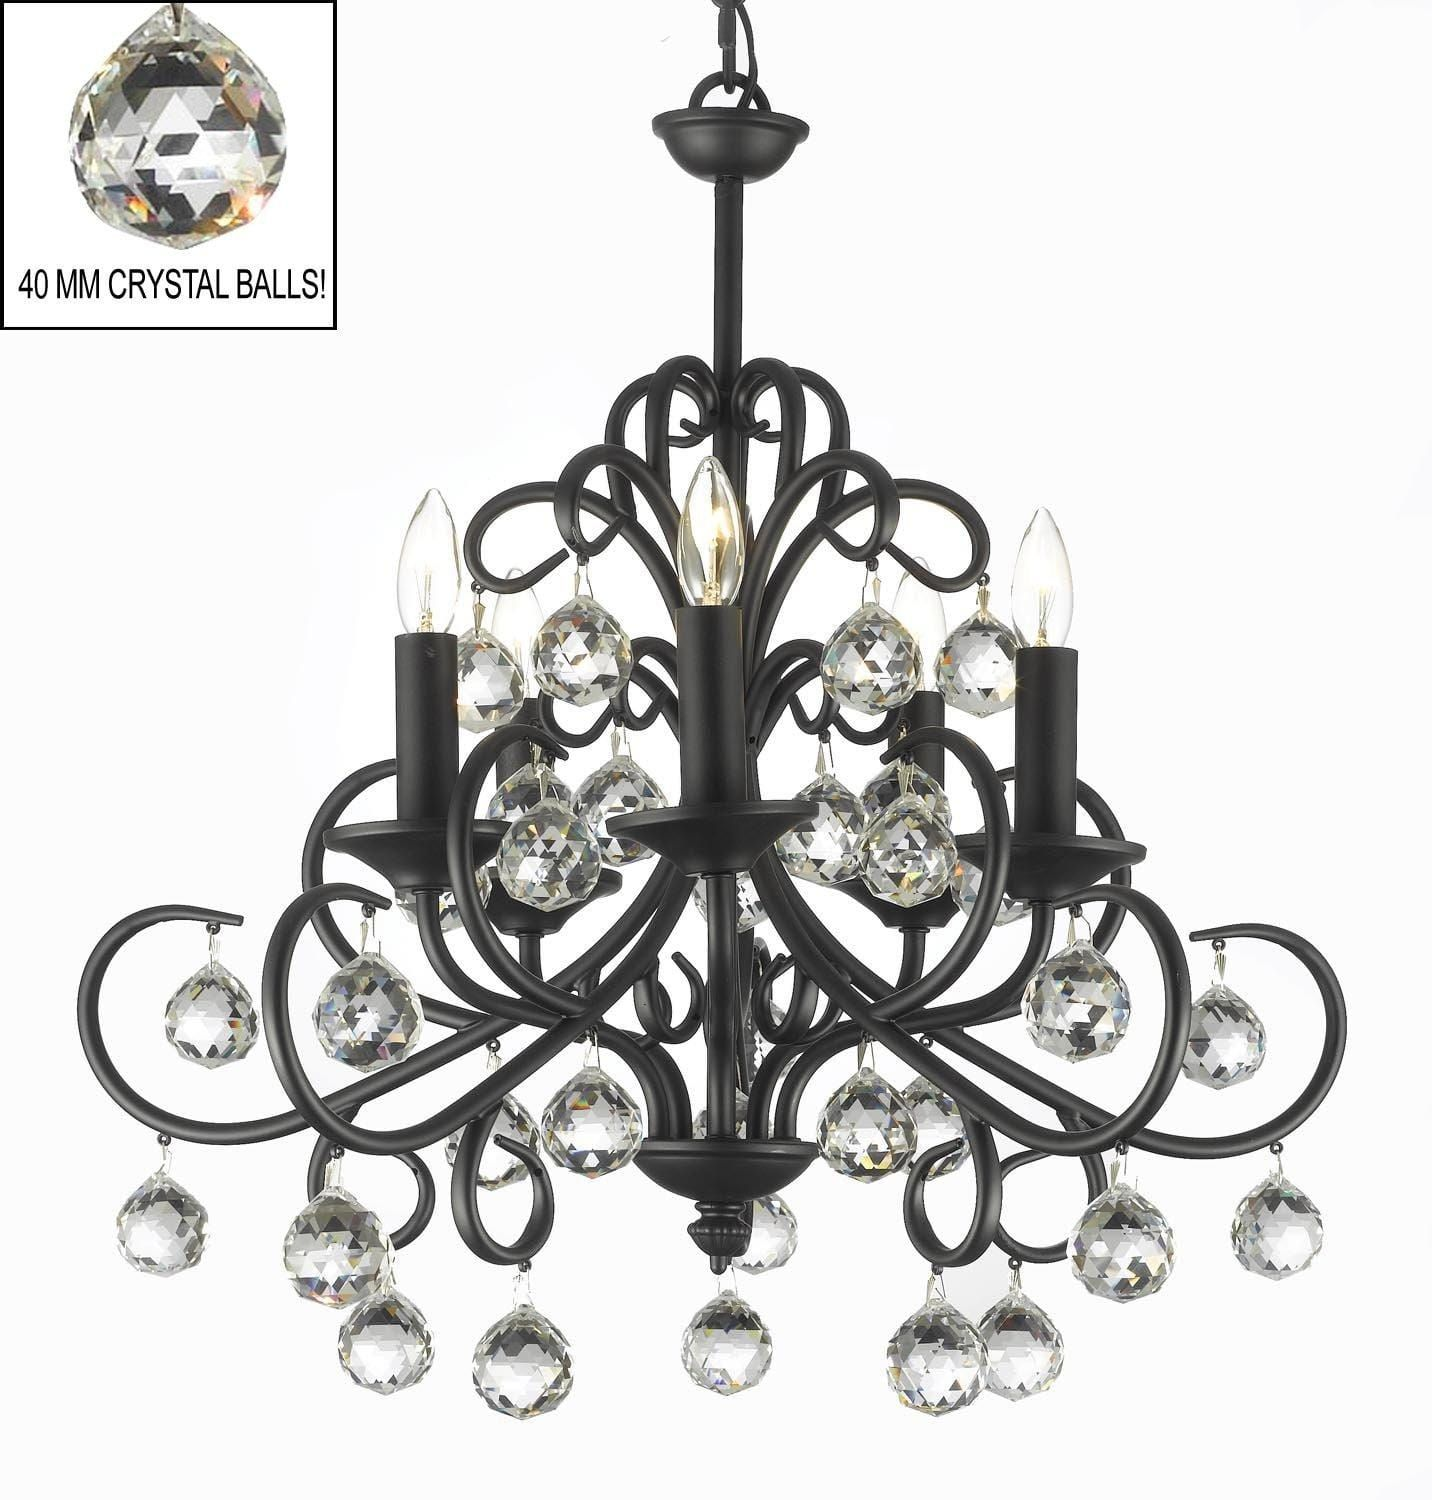 Bellora Crystal Wrought Iron Chandelier Lighting With Faceted ...